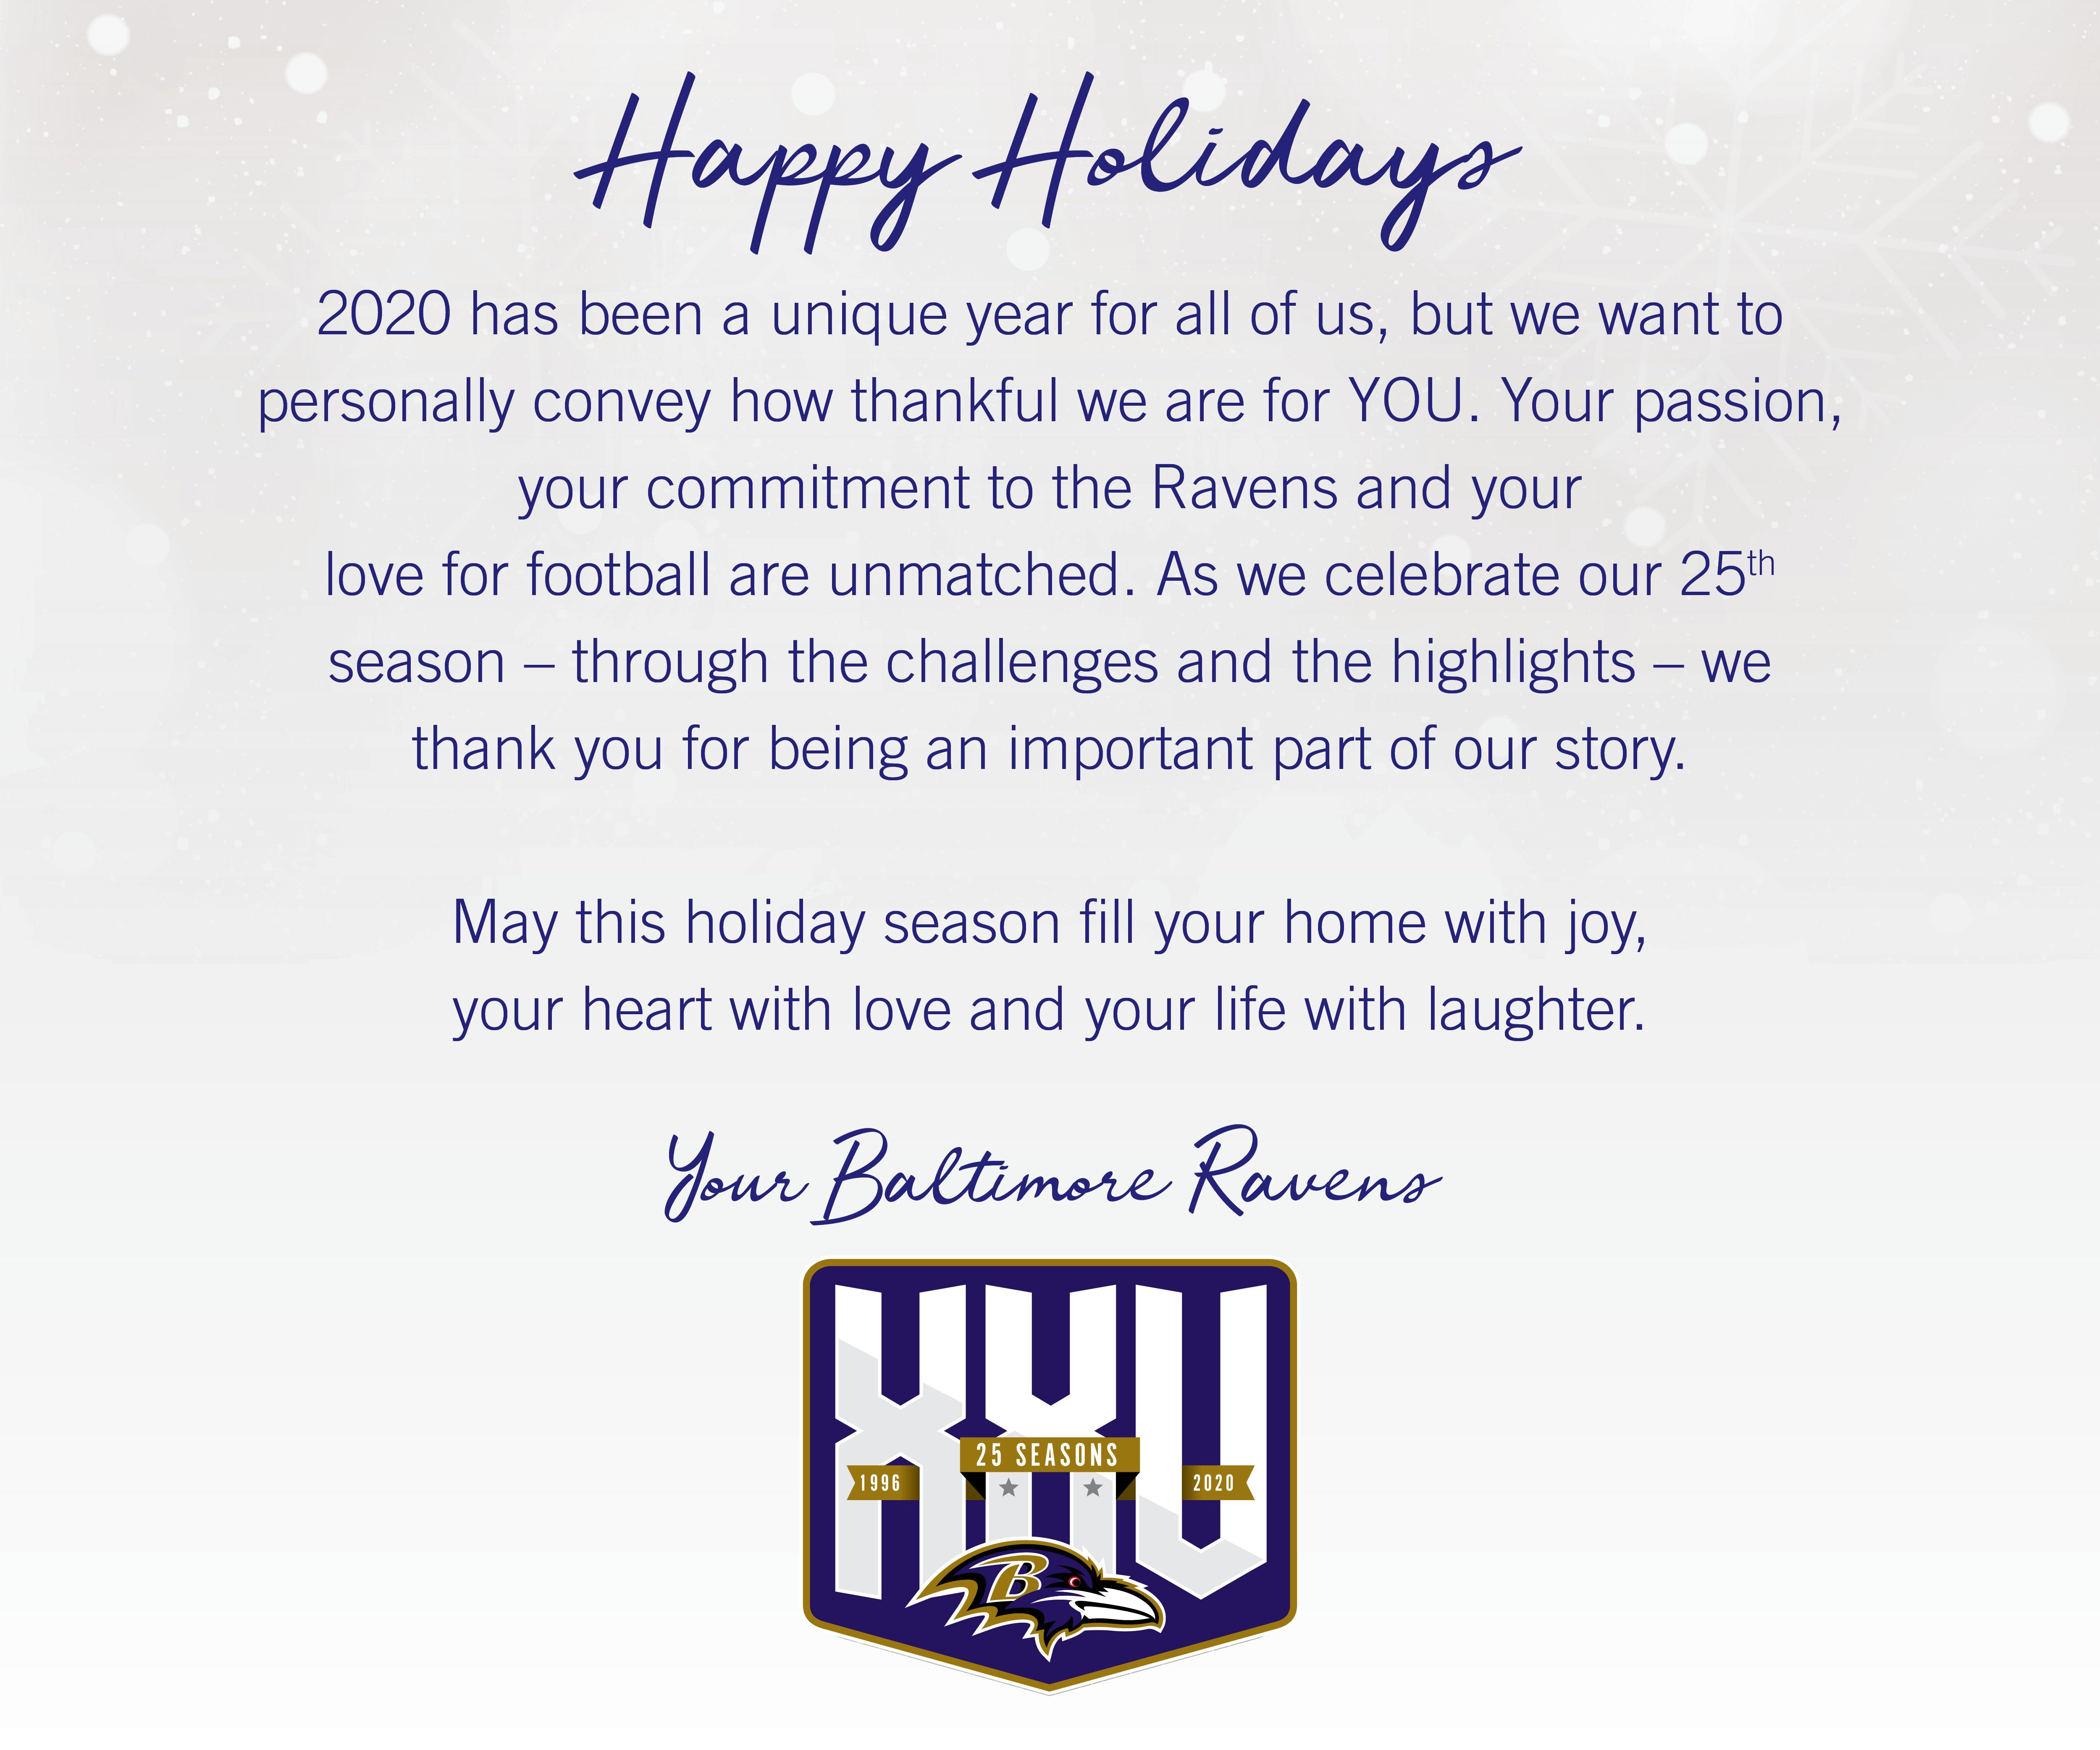 Happy Holidays!  2020 has been a unique year for all of us, but we want to personally convey how thankful we are for you. Your passion, your commitment to the Ravens and your love for football are unmatched. As we celebrate our 25th season - through the challenges and the highlights - we thank you for being an important part of our story.  May this holiday season fill your home with joy, your heart with love and your life with laughter.